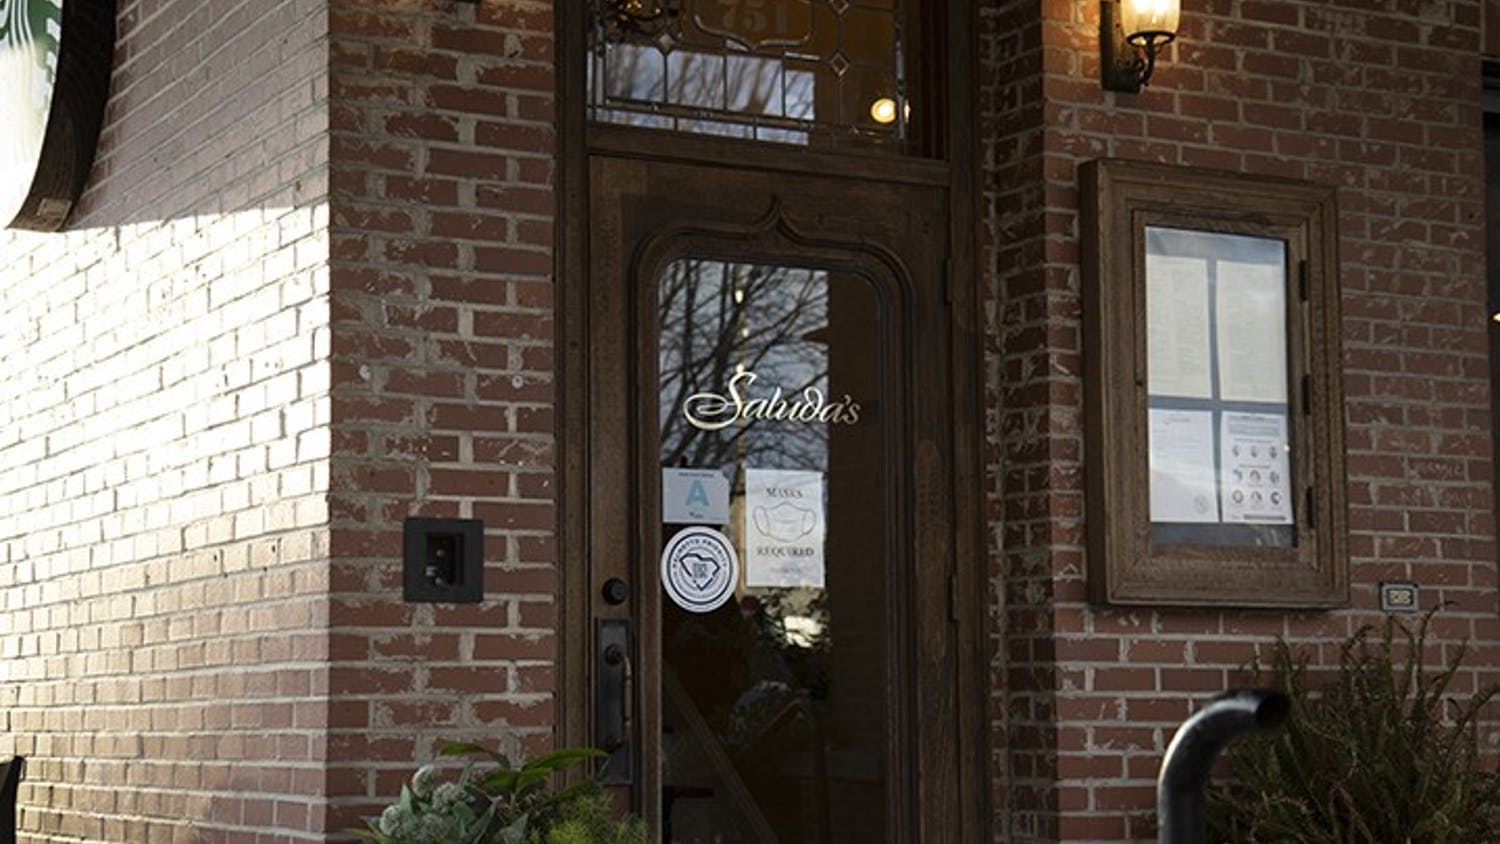 Saluda's Restaurant, located above Starbucks in Five Points, offers a fine dining atmosphere for both you and your date this Valentine's Day. Saluda's is currently offering a romantic three-course menu over Valentine's Day weekend, Feb. 12-14.